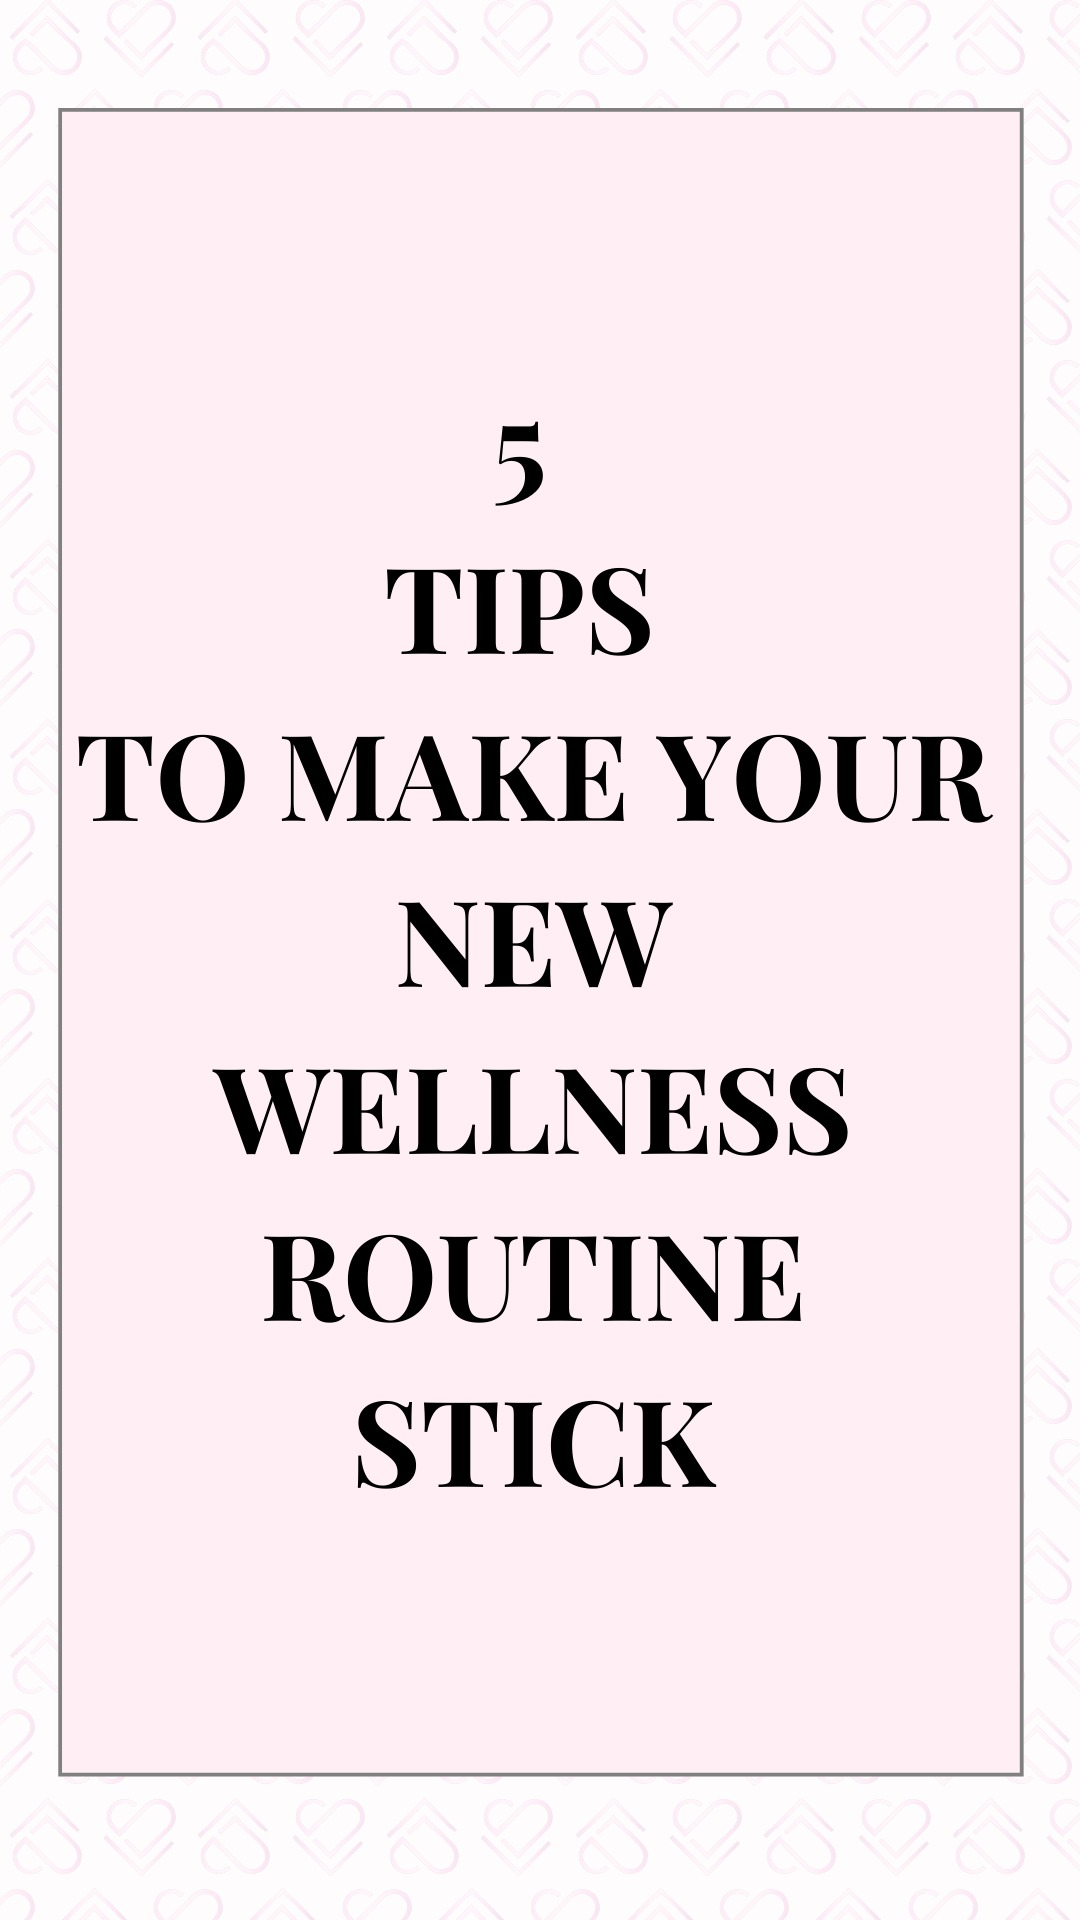 5 TIPS TO MAKE YOUR NEW WELLNESS ROUTINE HABITUAL